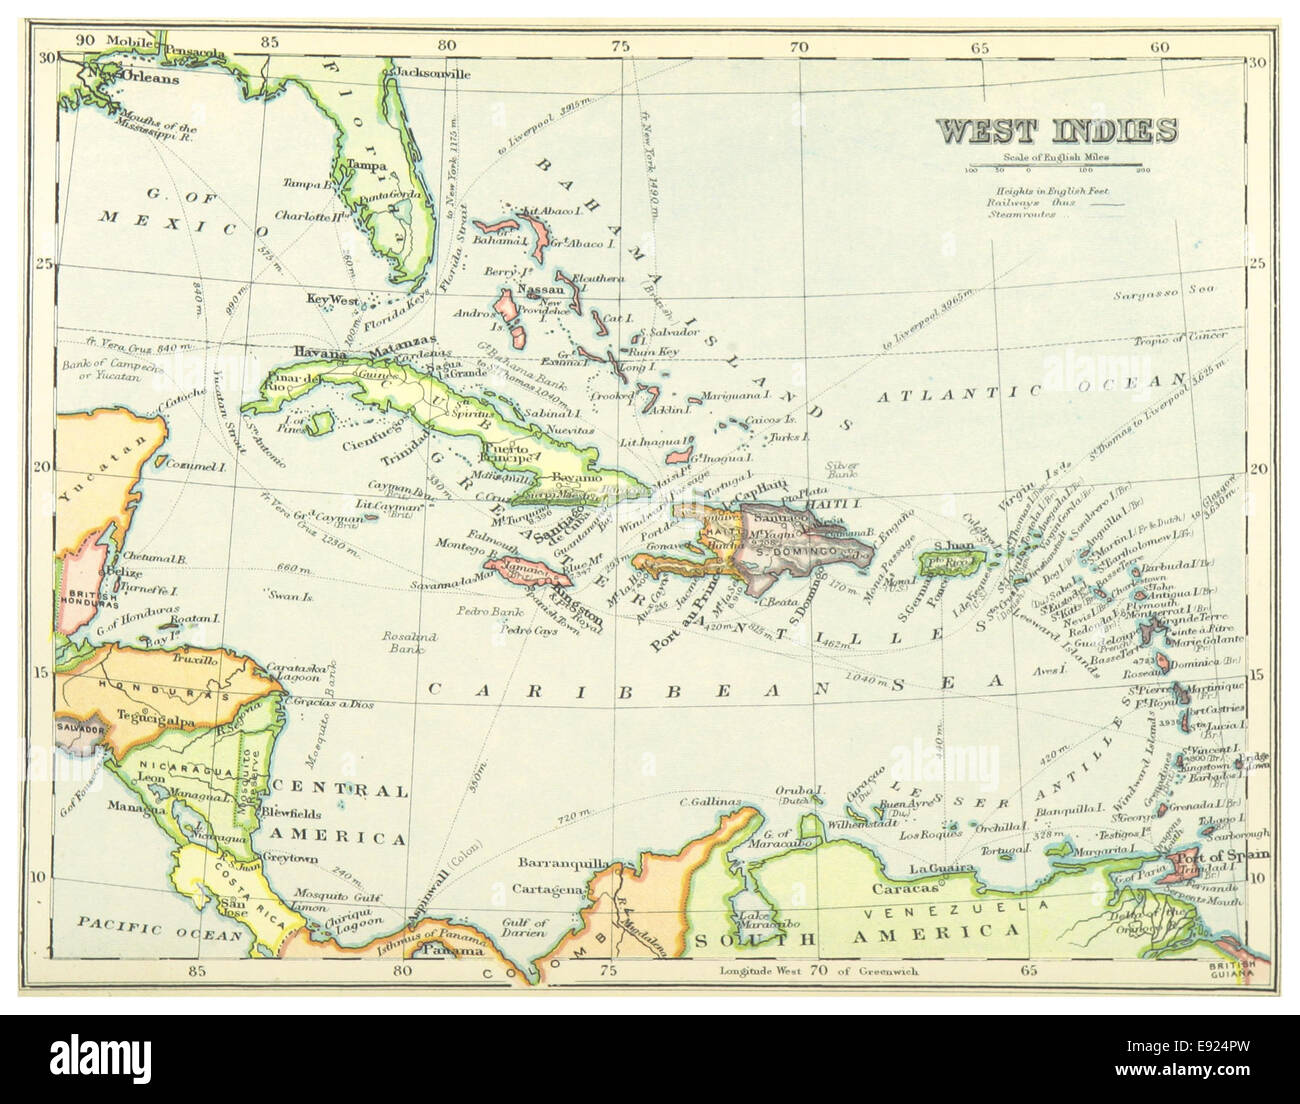 1899) MAP OF WEST INDIES - comp. by Irvine Stock Photo ...